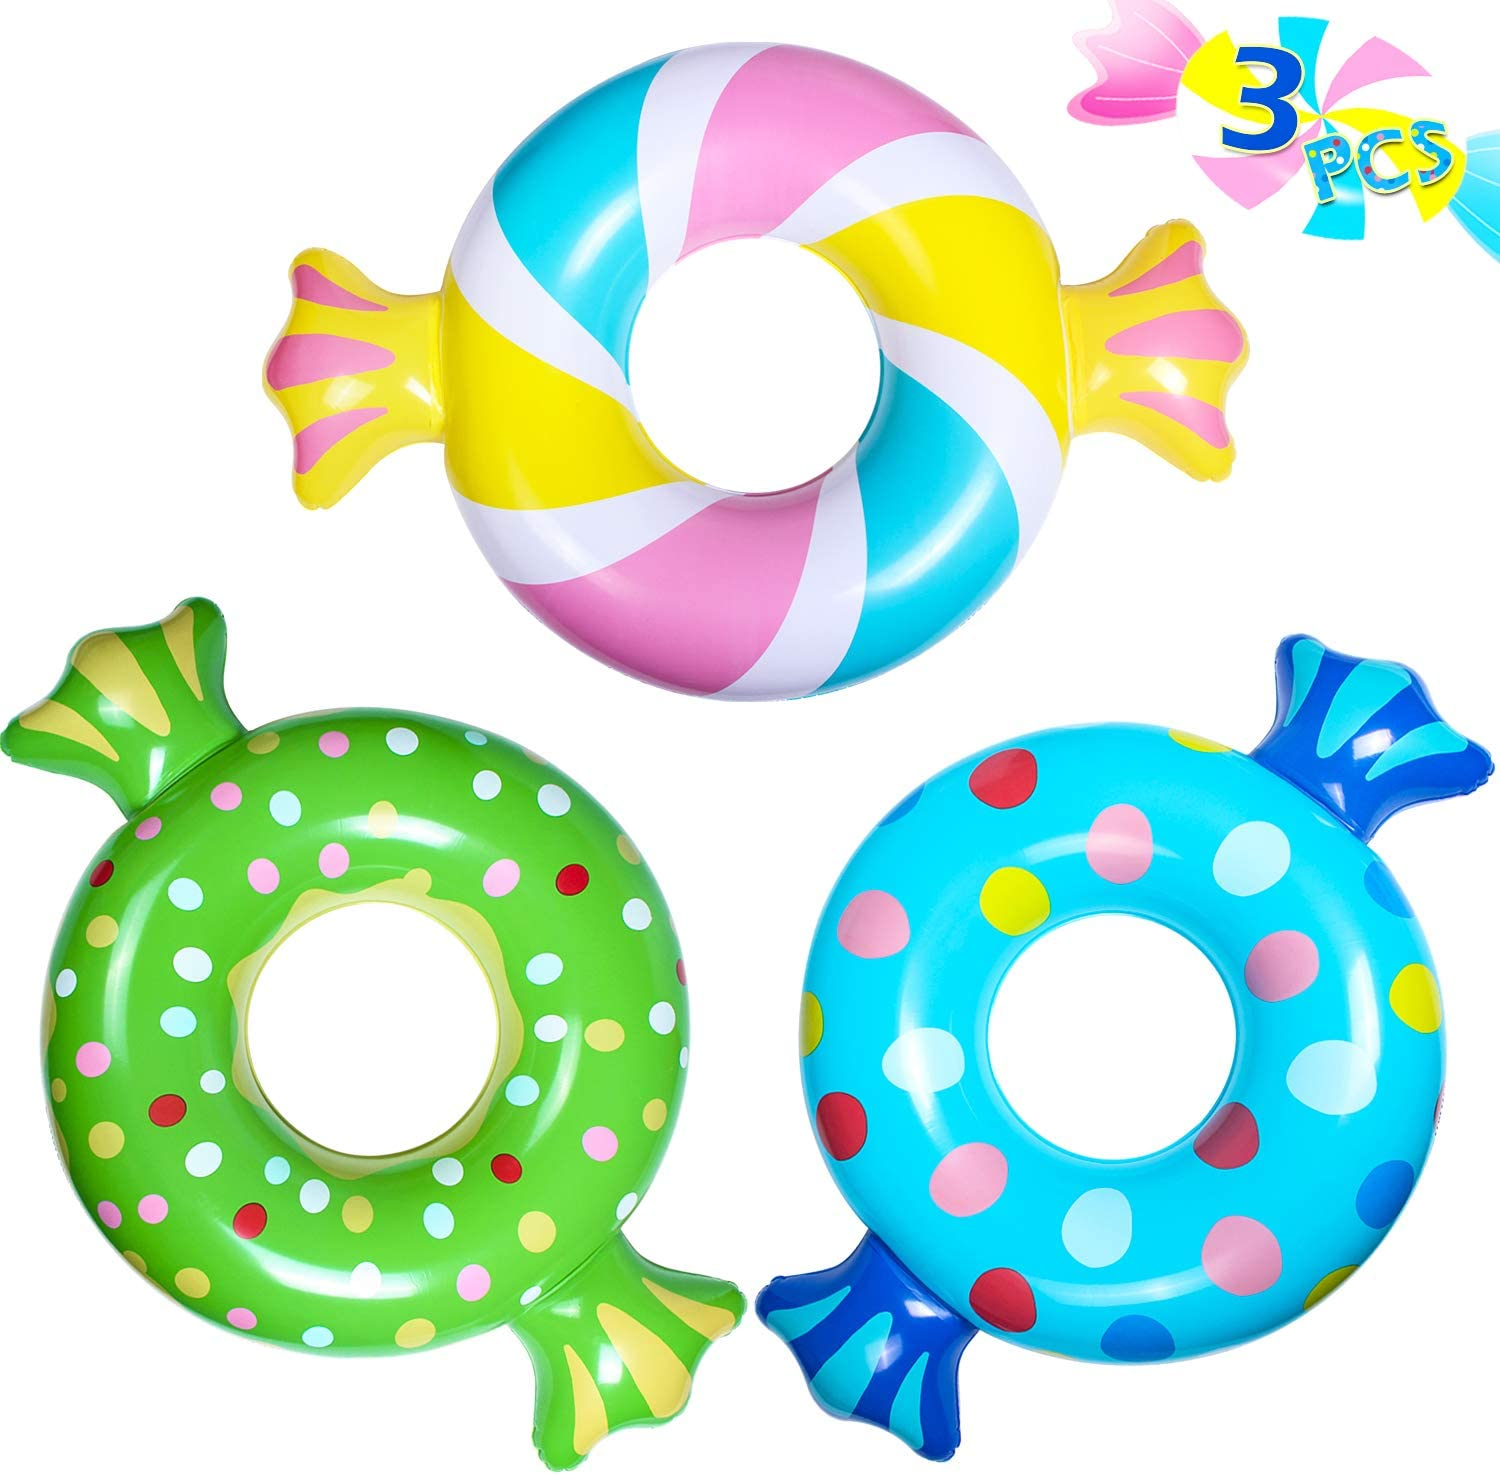 Pink Sweet Troublemaker Donut Swimming Ring Inflatable Swimming Ring 90CM for Children Kids 6-12 Years